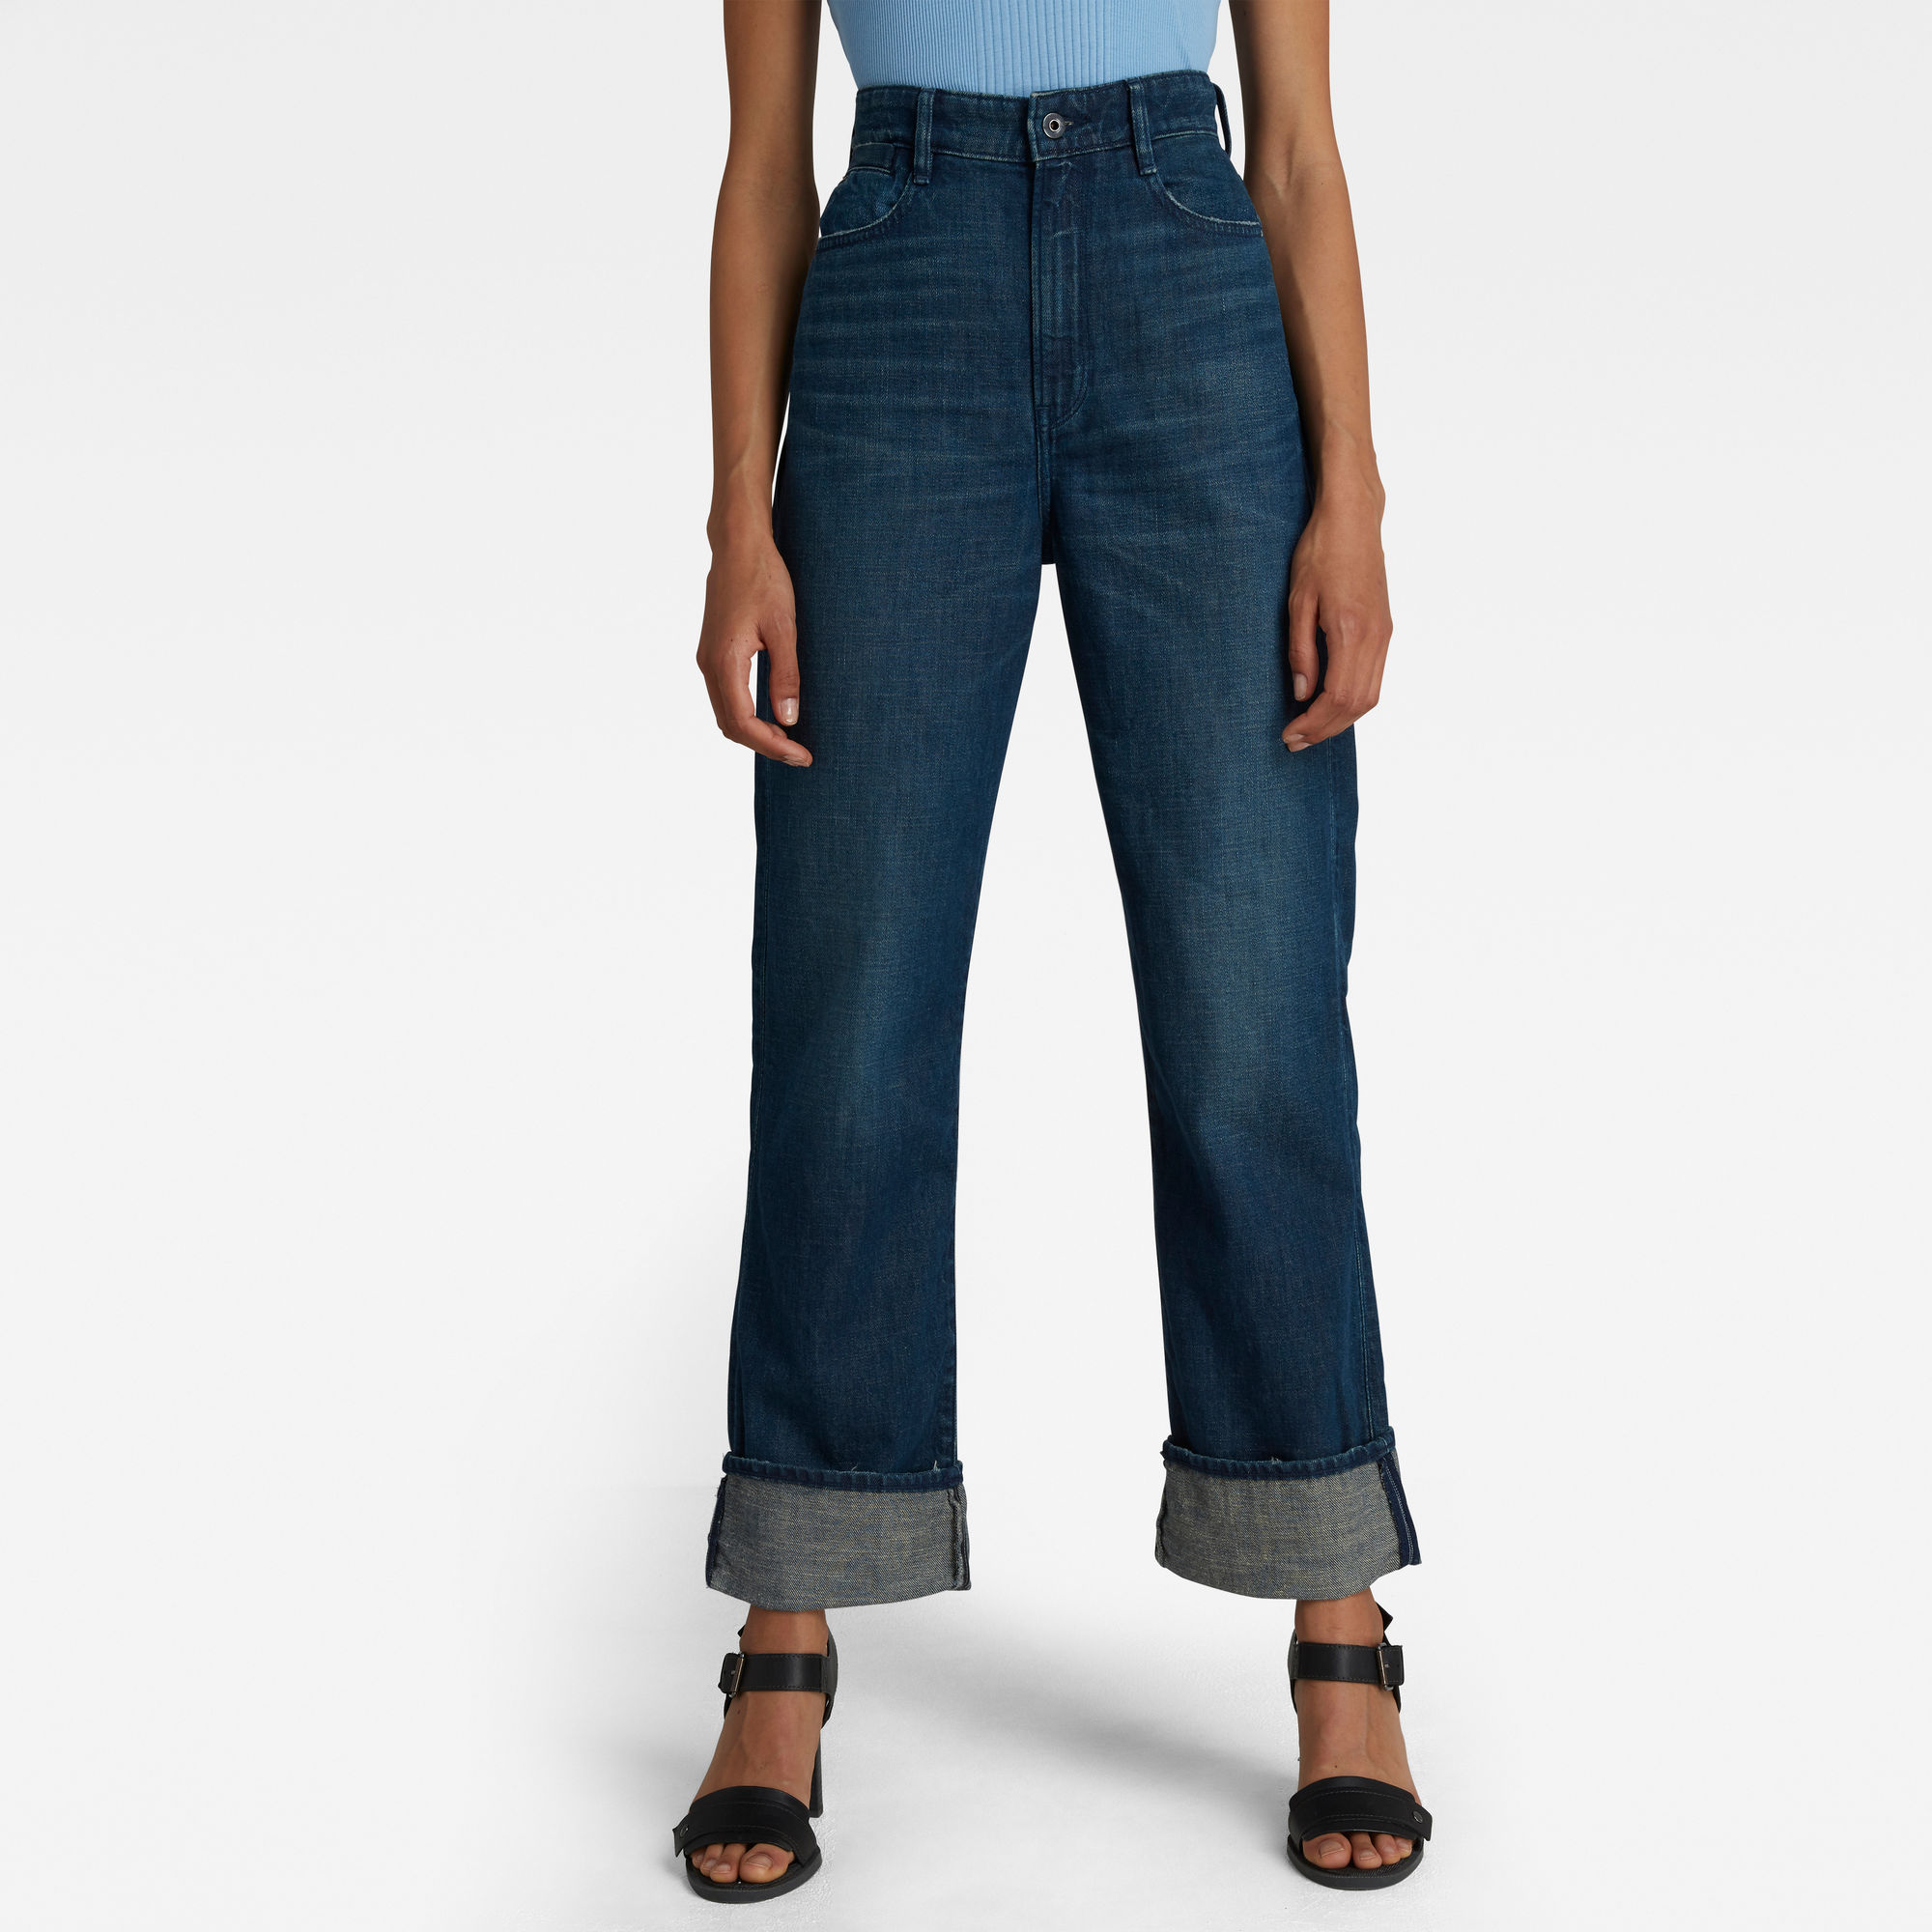 G-Star RAW Dames Tedie Ultra High Straight Jeans Donkerblauw